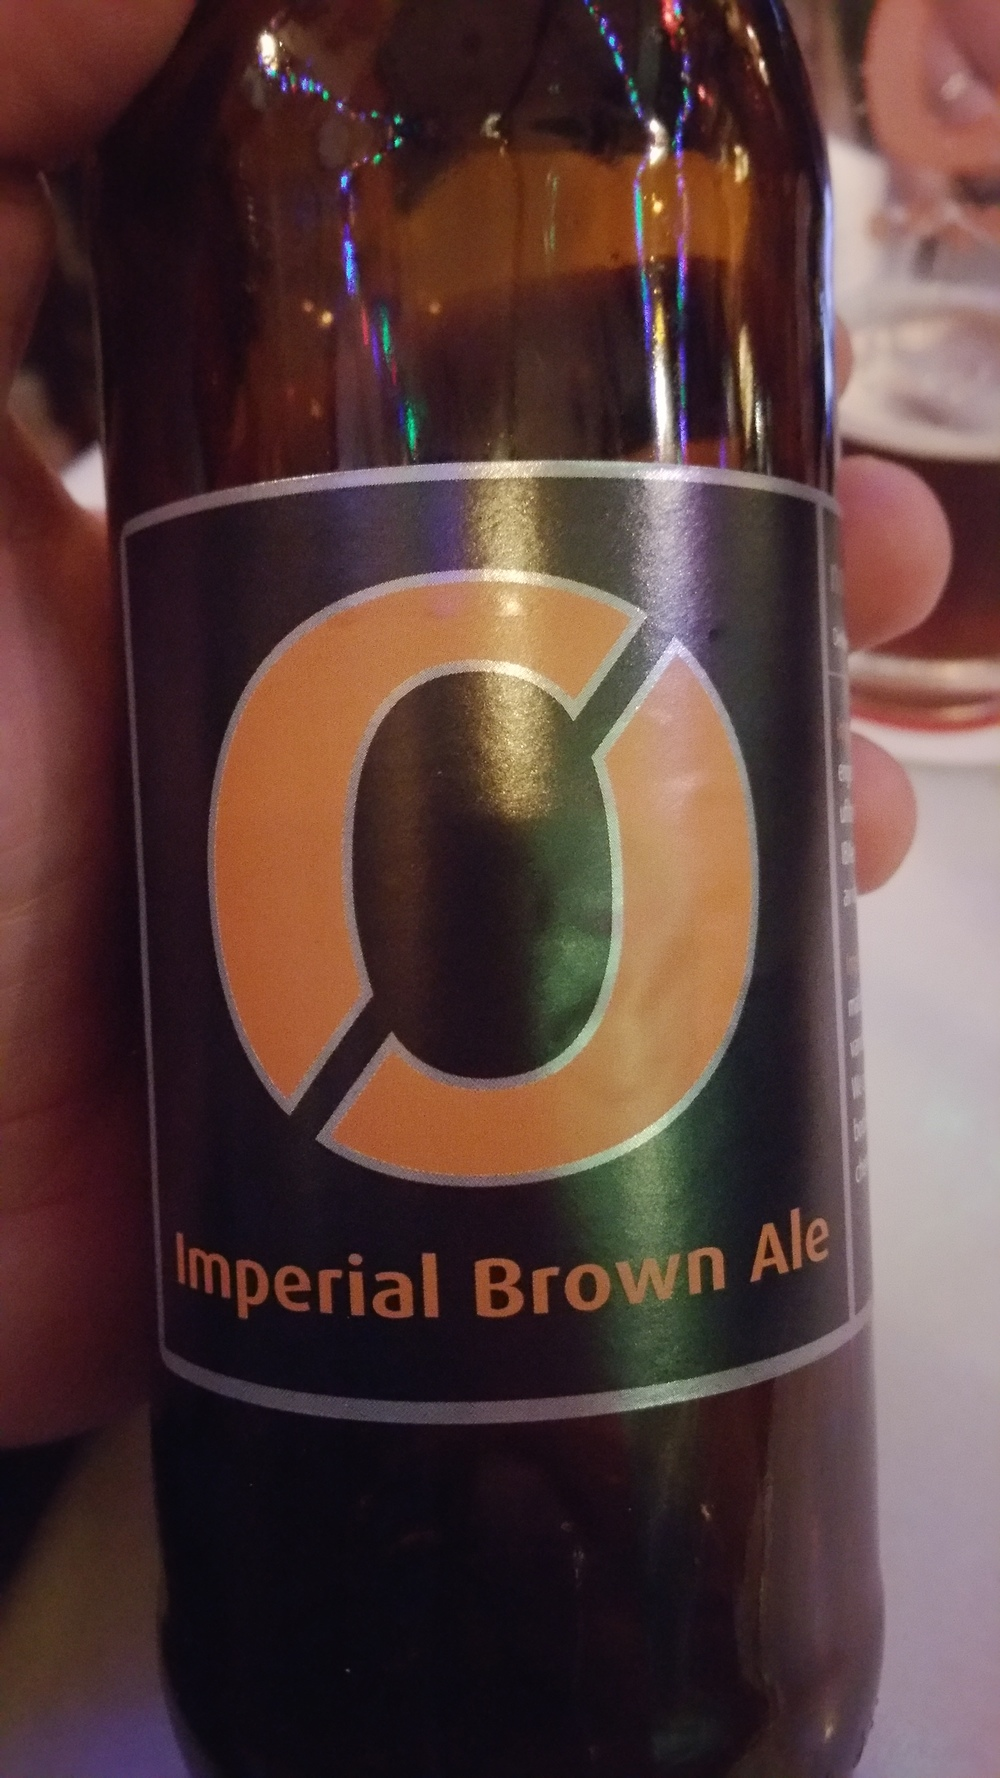 Nøgne Ø Imperial Brown Ale 7,5%ABV